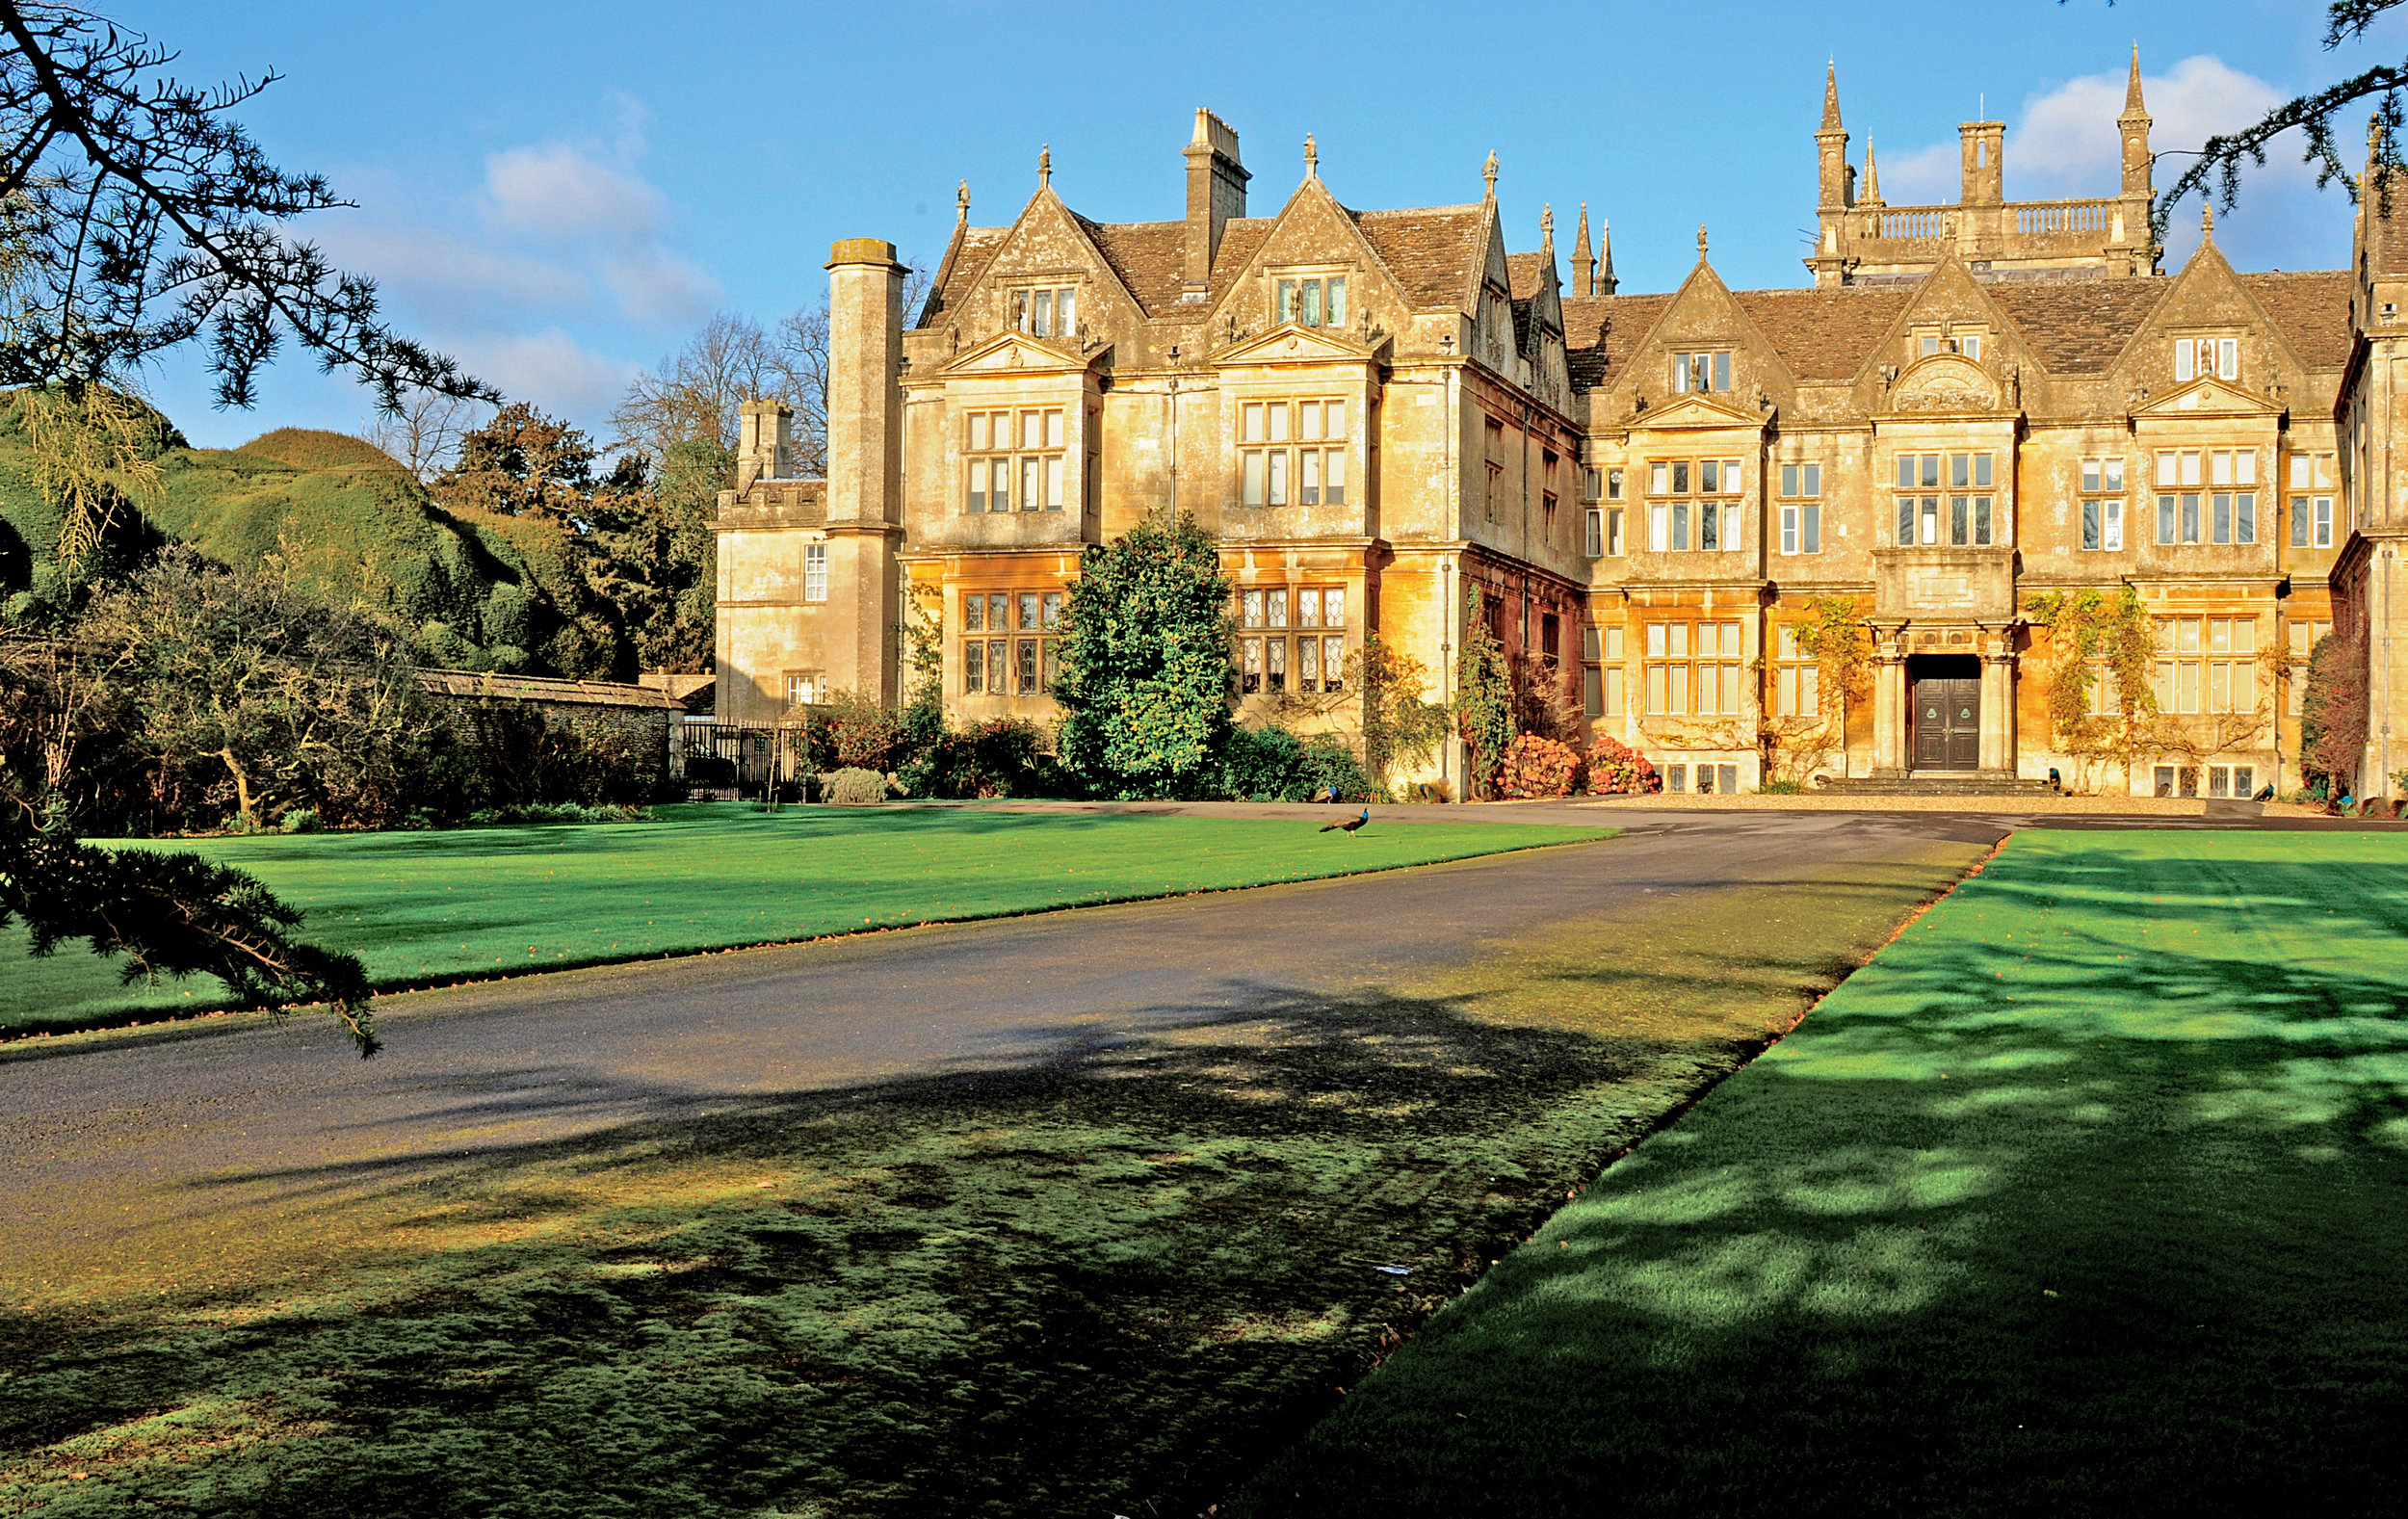 Corsham Court, Corsham, Wilts., England copy.jpg